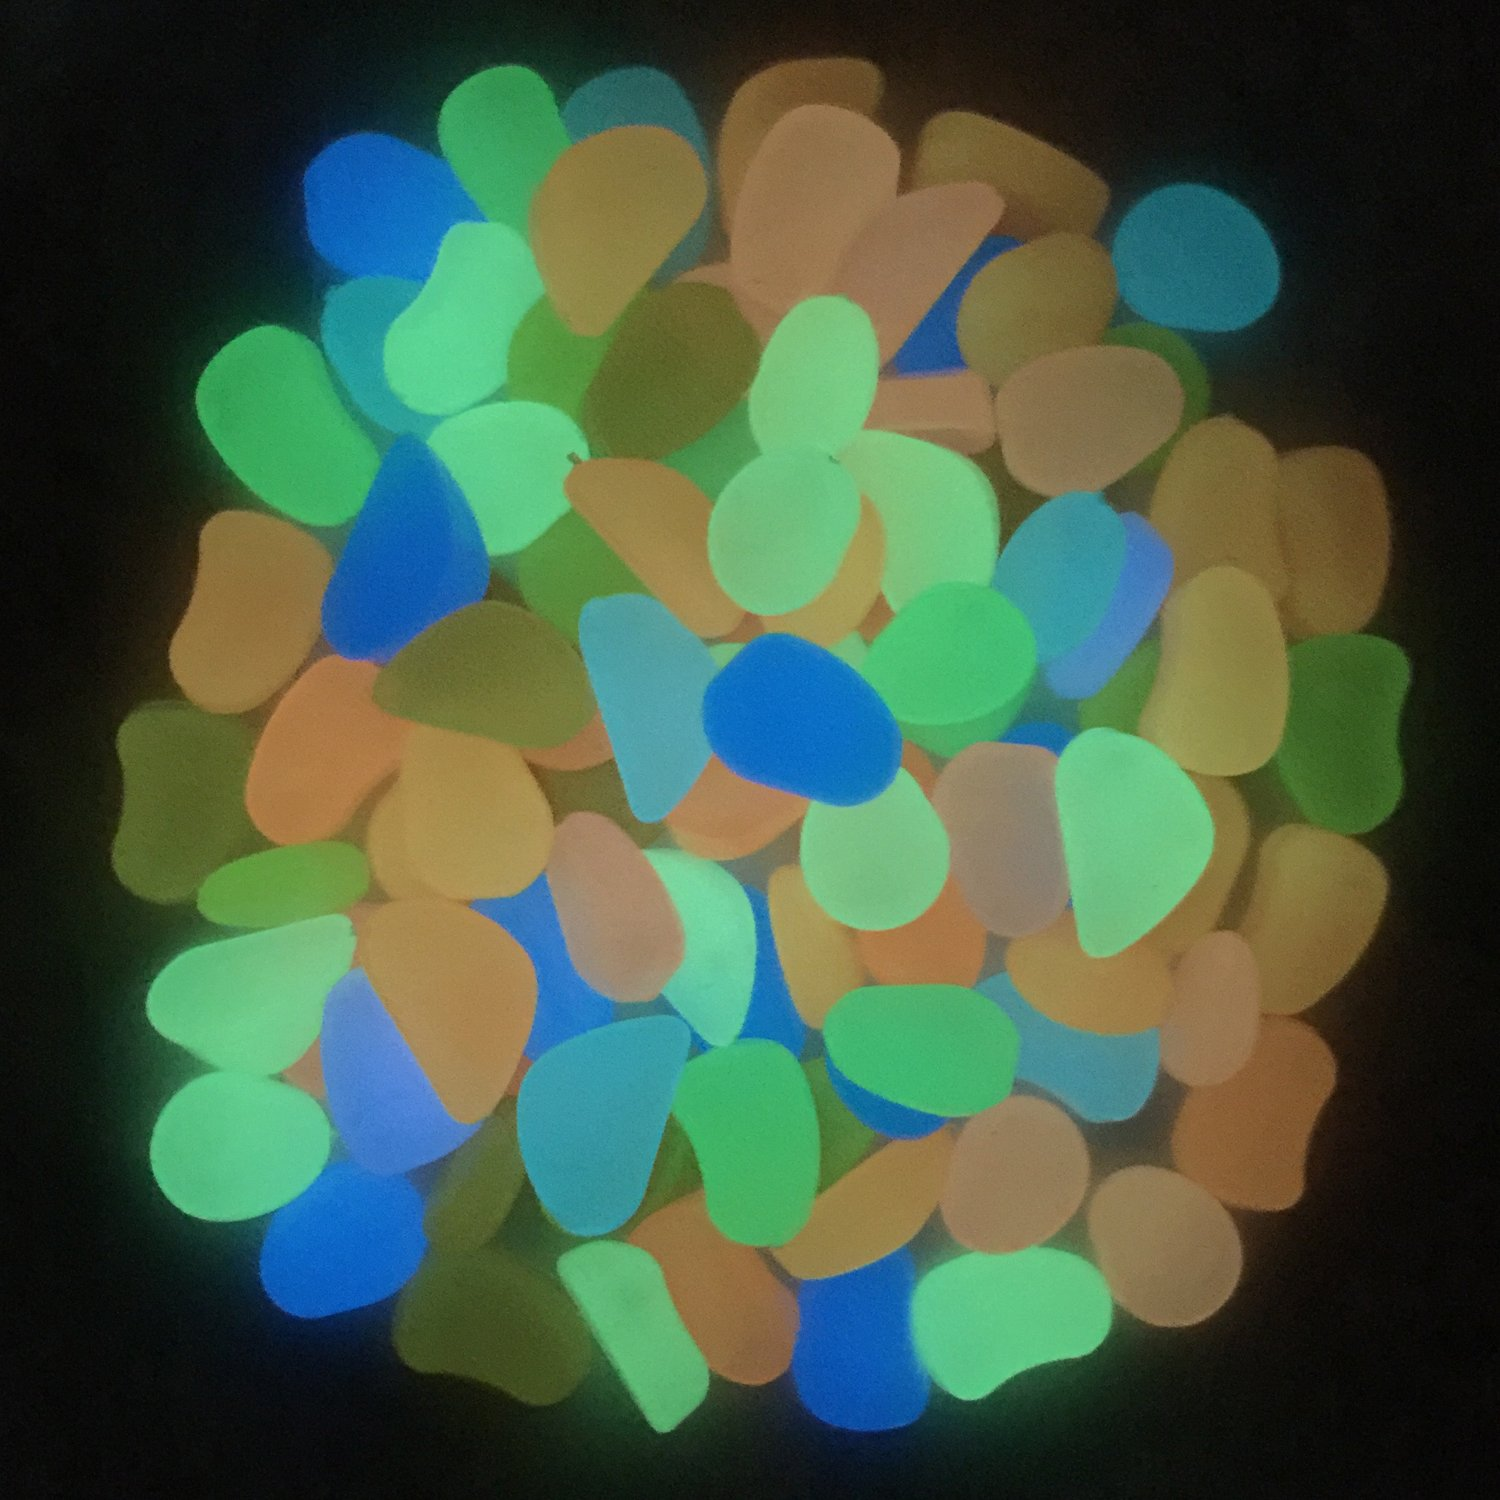 Glow in the Dark pebble Photoluminescent artificial rock Fluorescent cobblestone Noctilucent resin stone for fish tank garden trails decoration 250 g Blue-Green